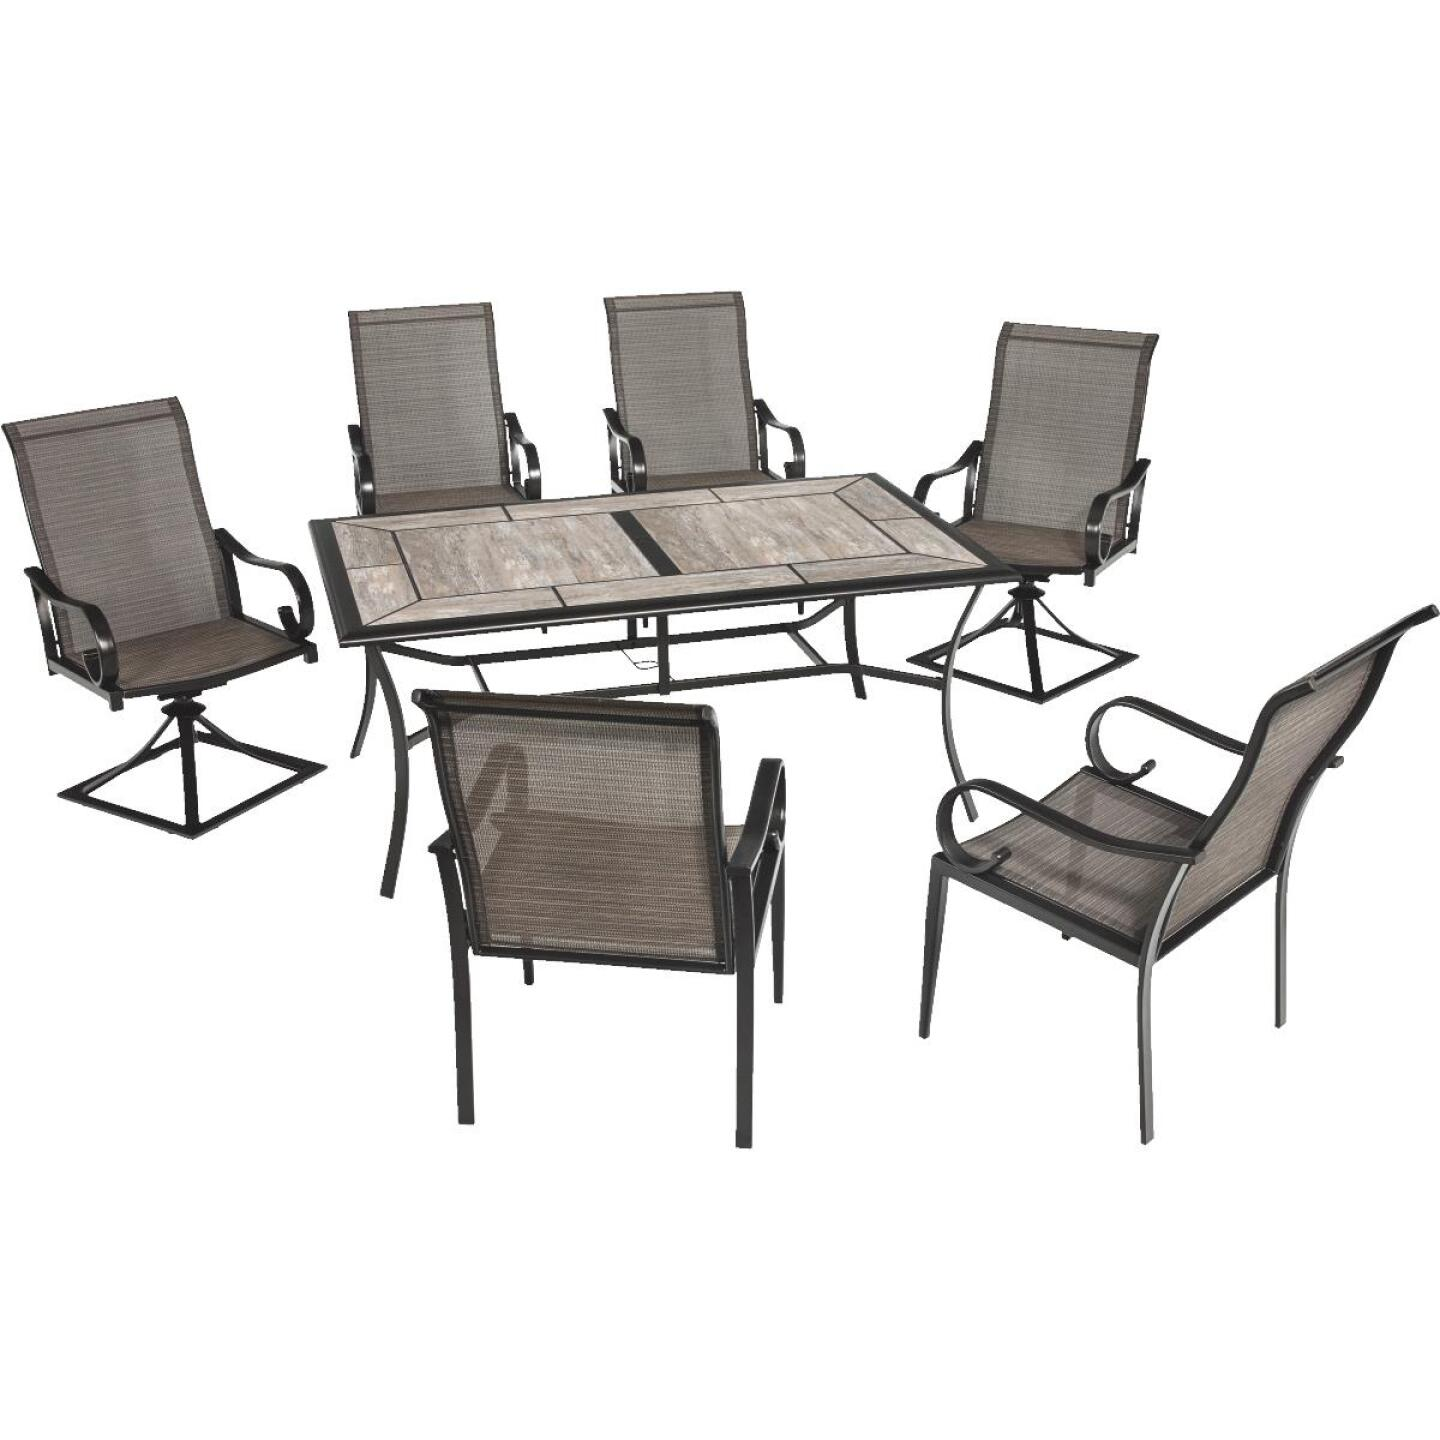 Outdoor Expressions Berkshire 7-Piece Dining Set Image 296